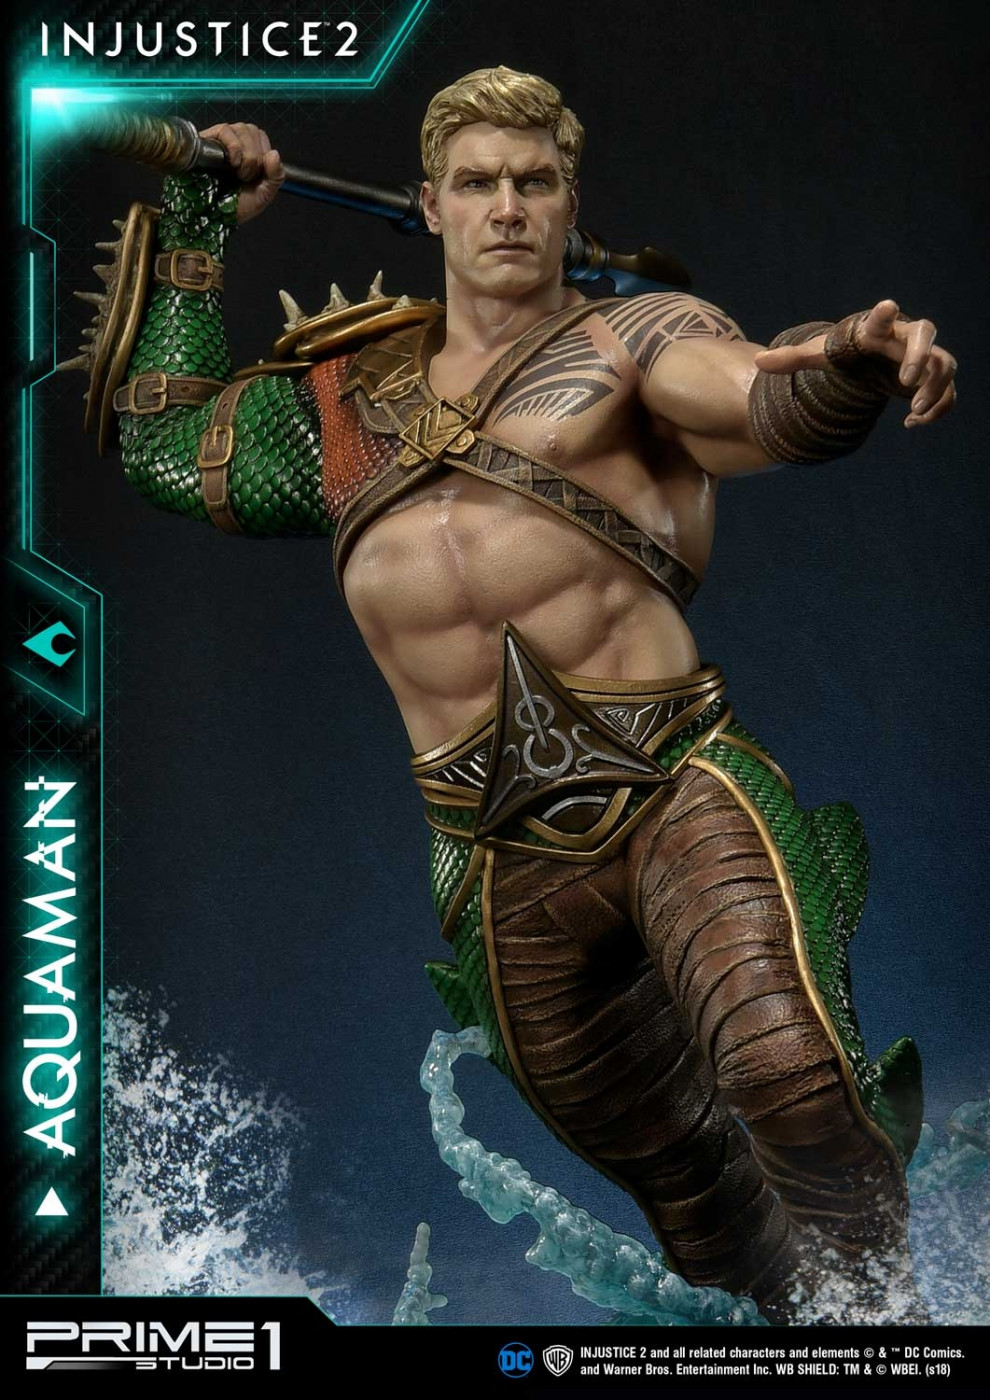 Premium Masterline Injustice 2 Aquaman